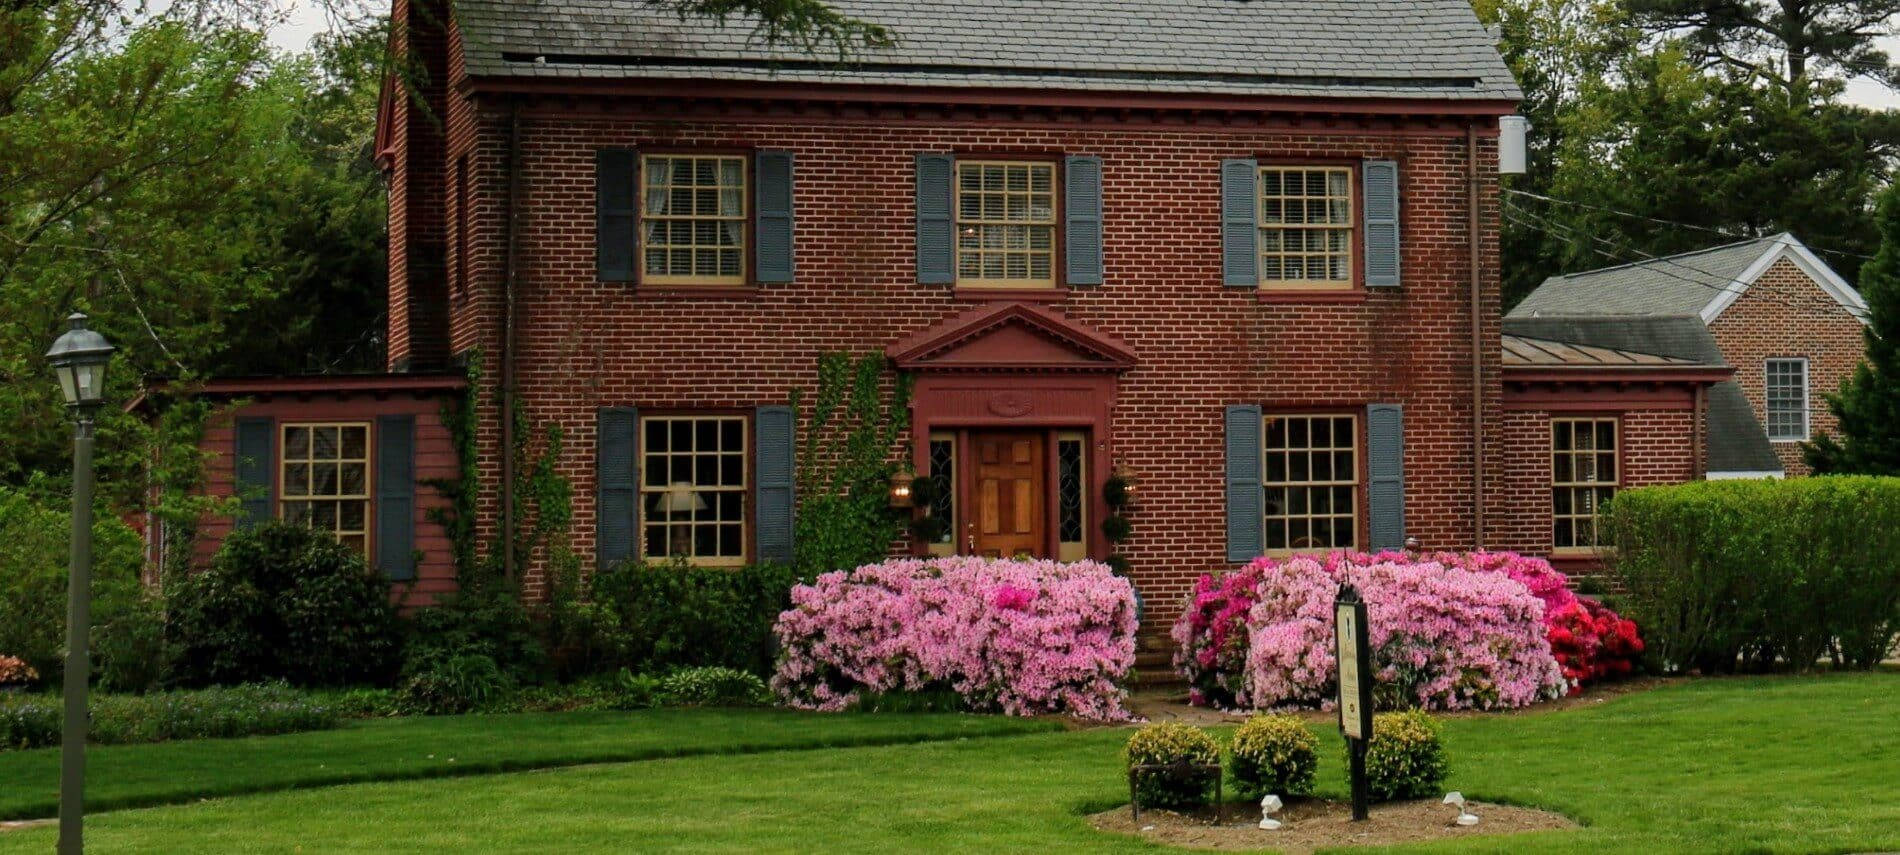 Front facade of an elegant red brick home with several windows and tall pink flowering shrubs by the front path